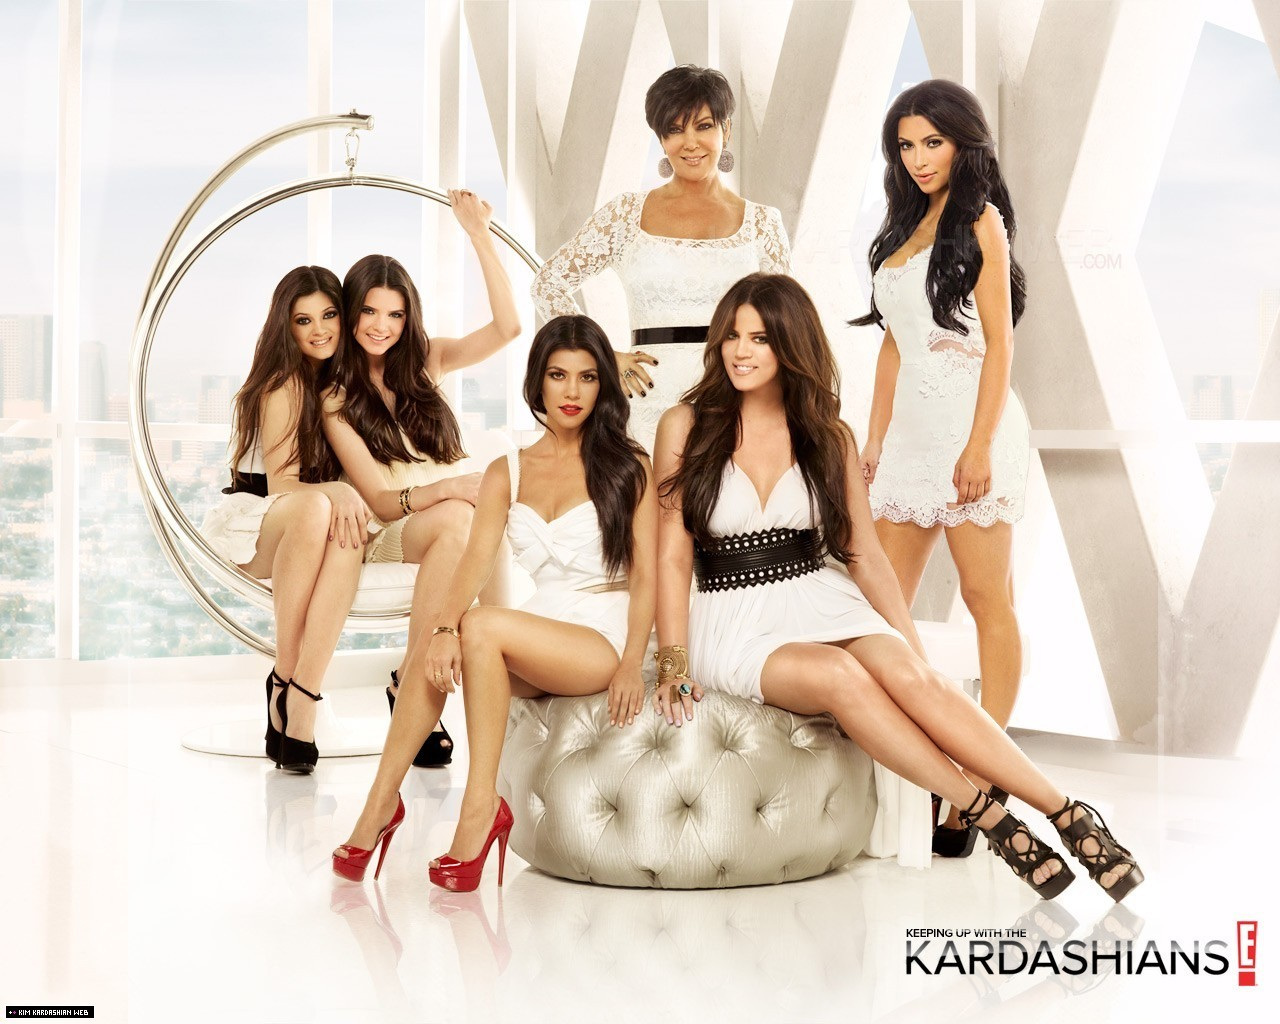 keeping up with the kardashians - photo #11